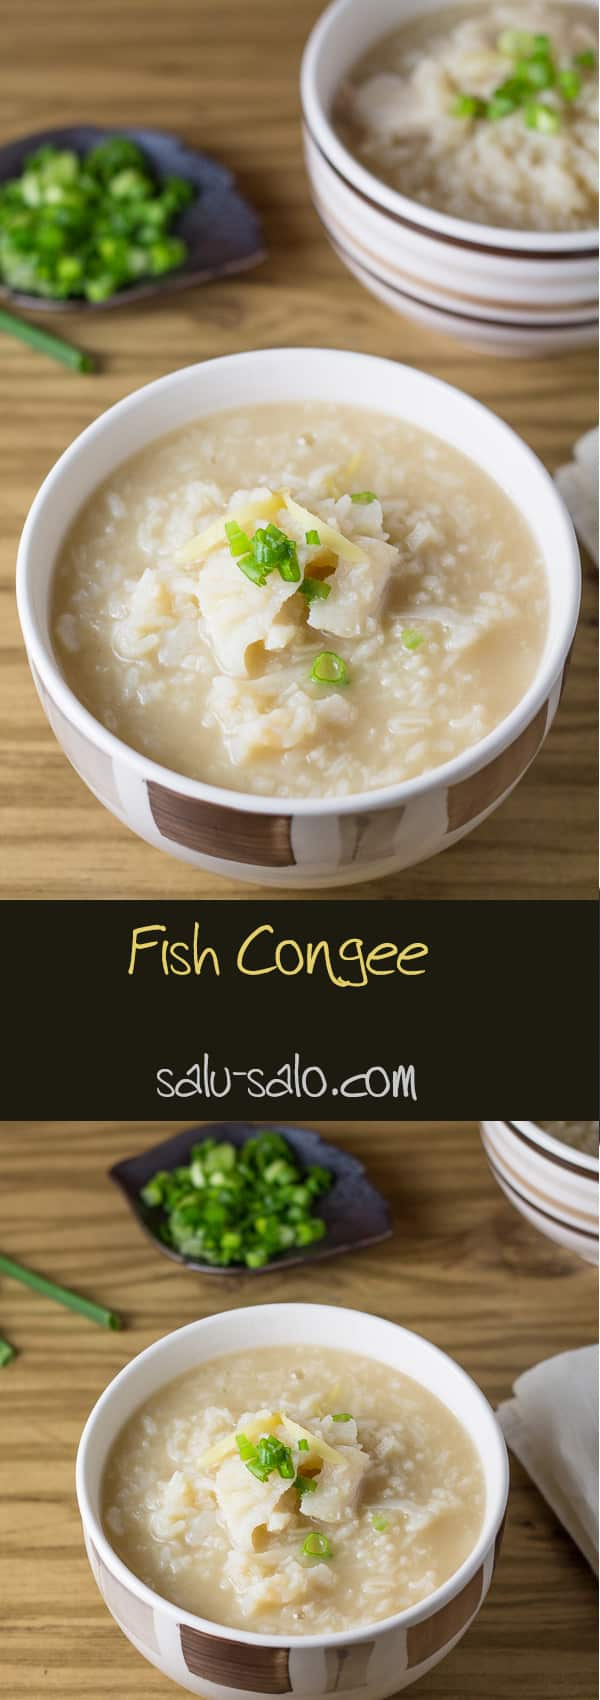 Fish Congee Multiple Images Combined